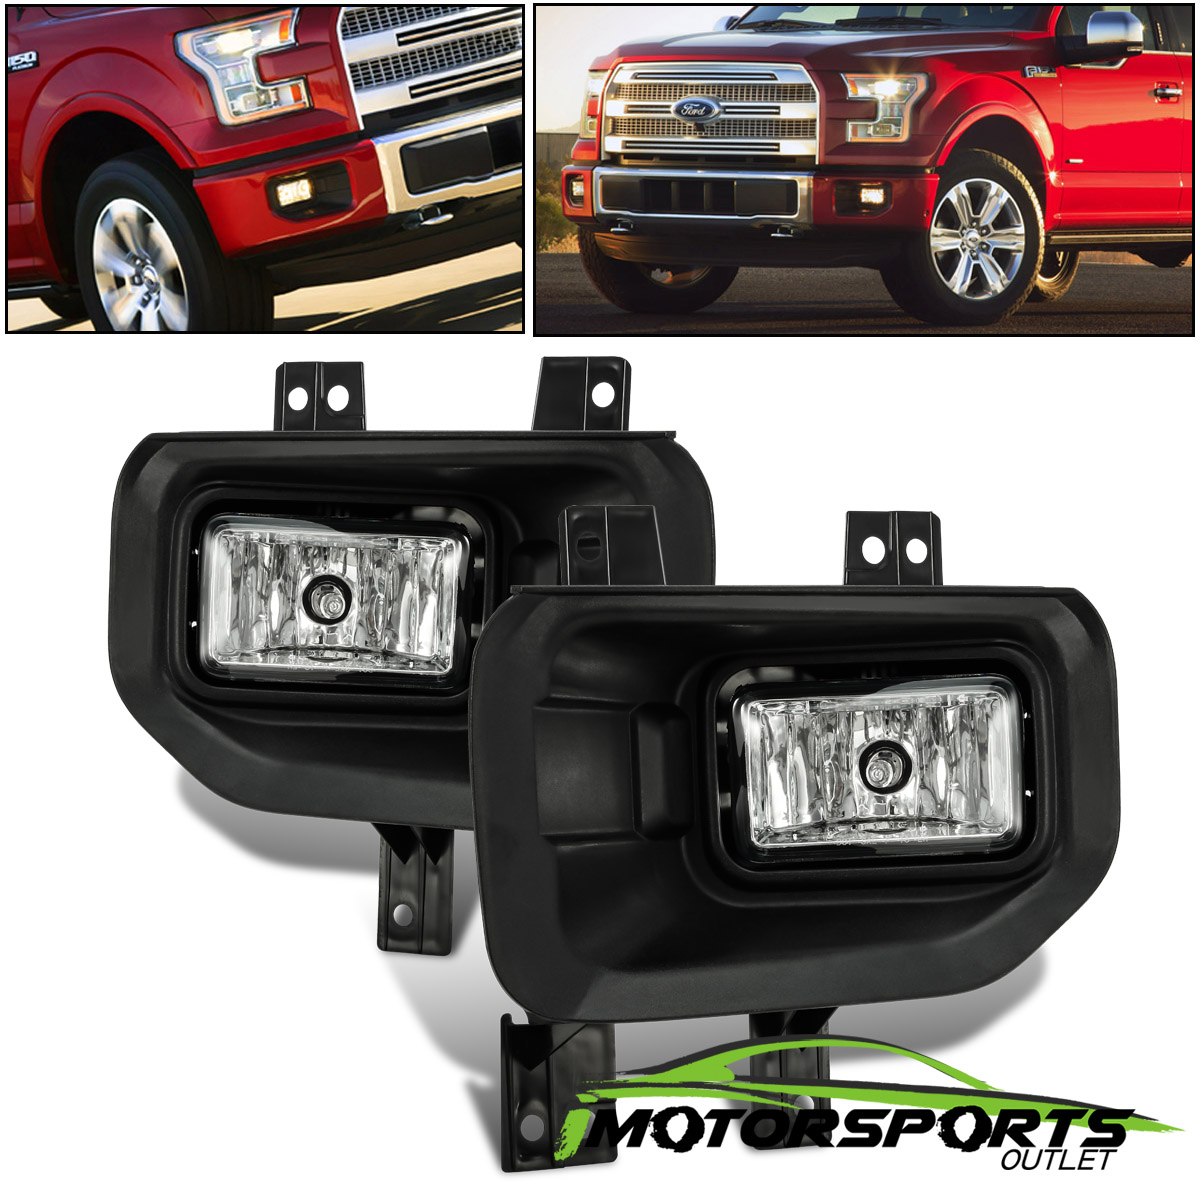 New Set of 2 Fog Light Brackets Lamps Driver /& Passenger Side F150 Truck Pair